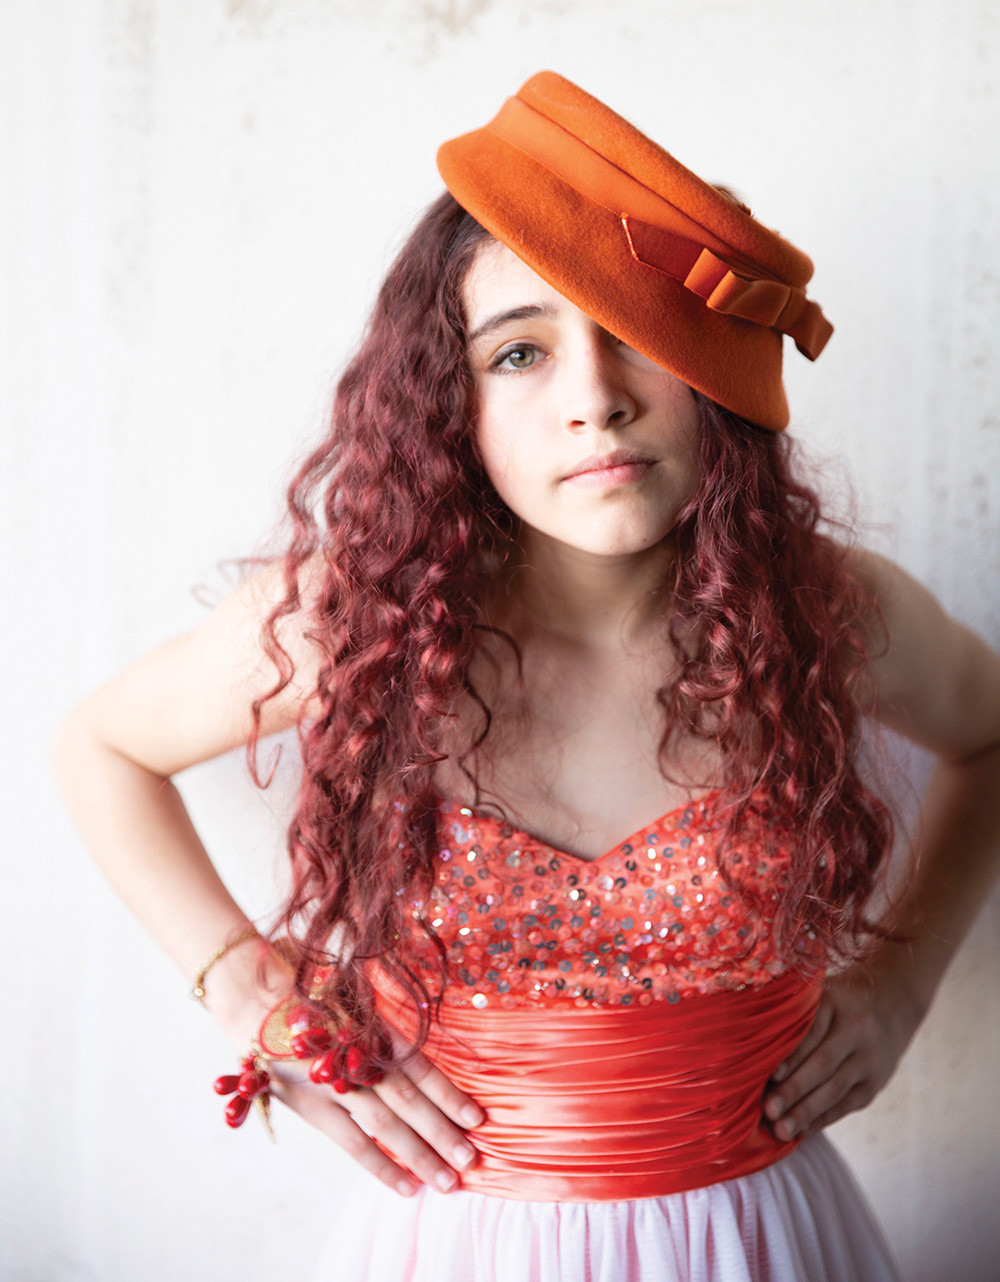 Young girl in evening gown with wildly curly hair under a vintage hat, portrait